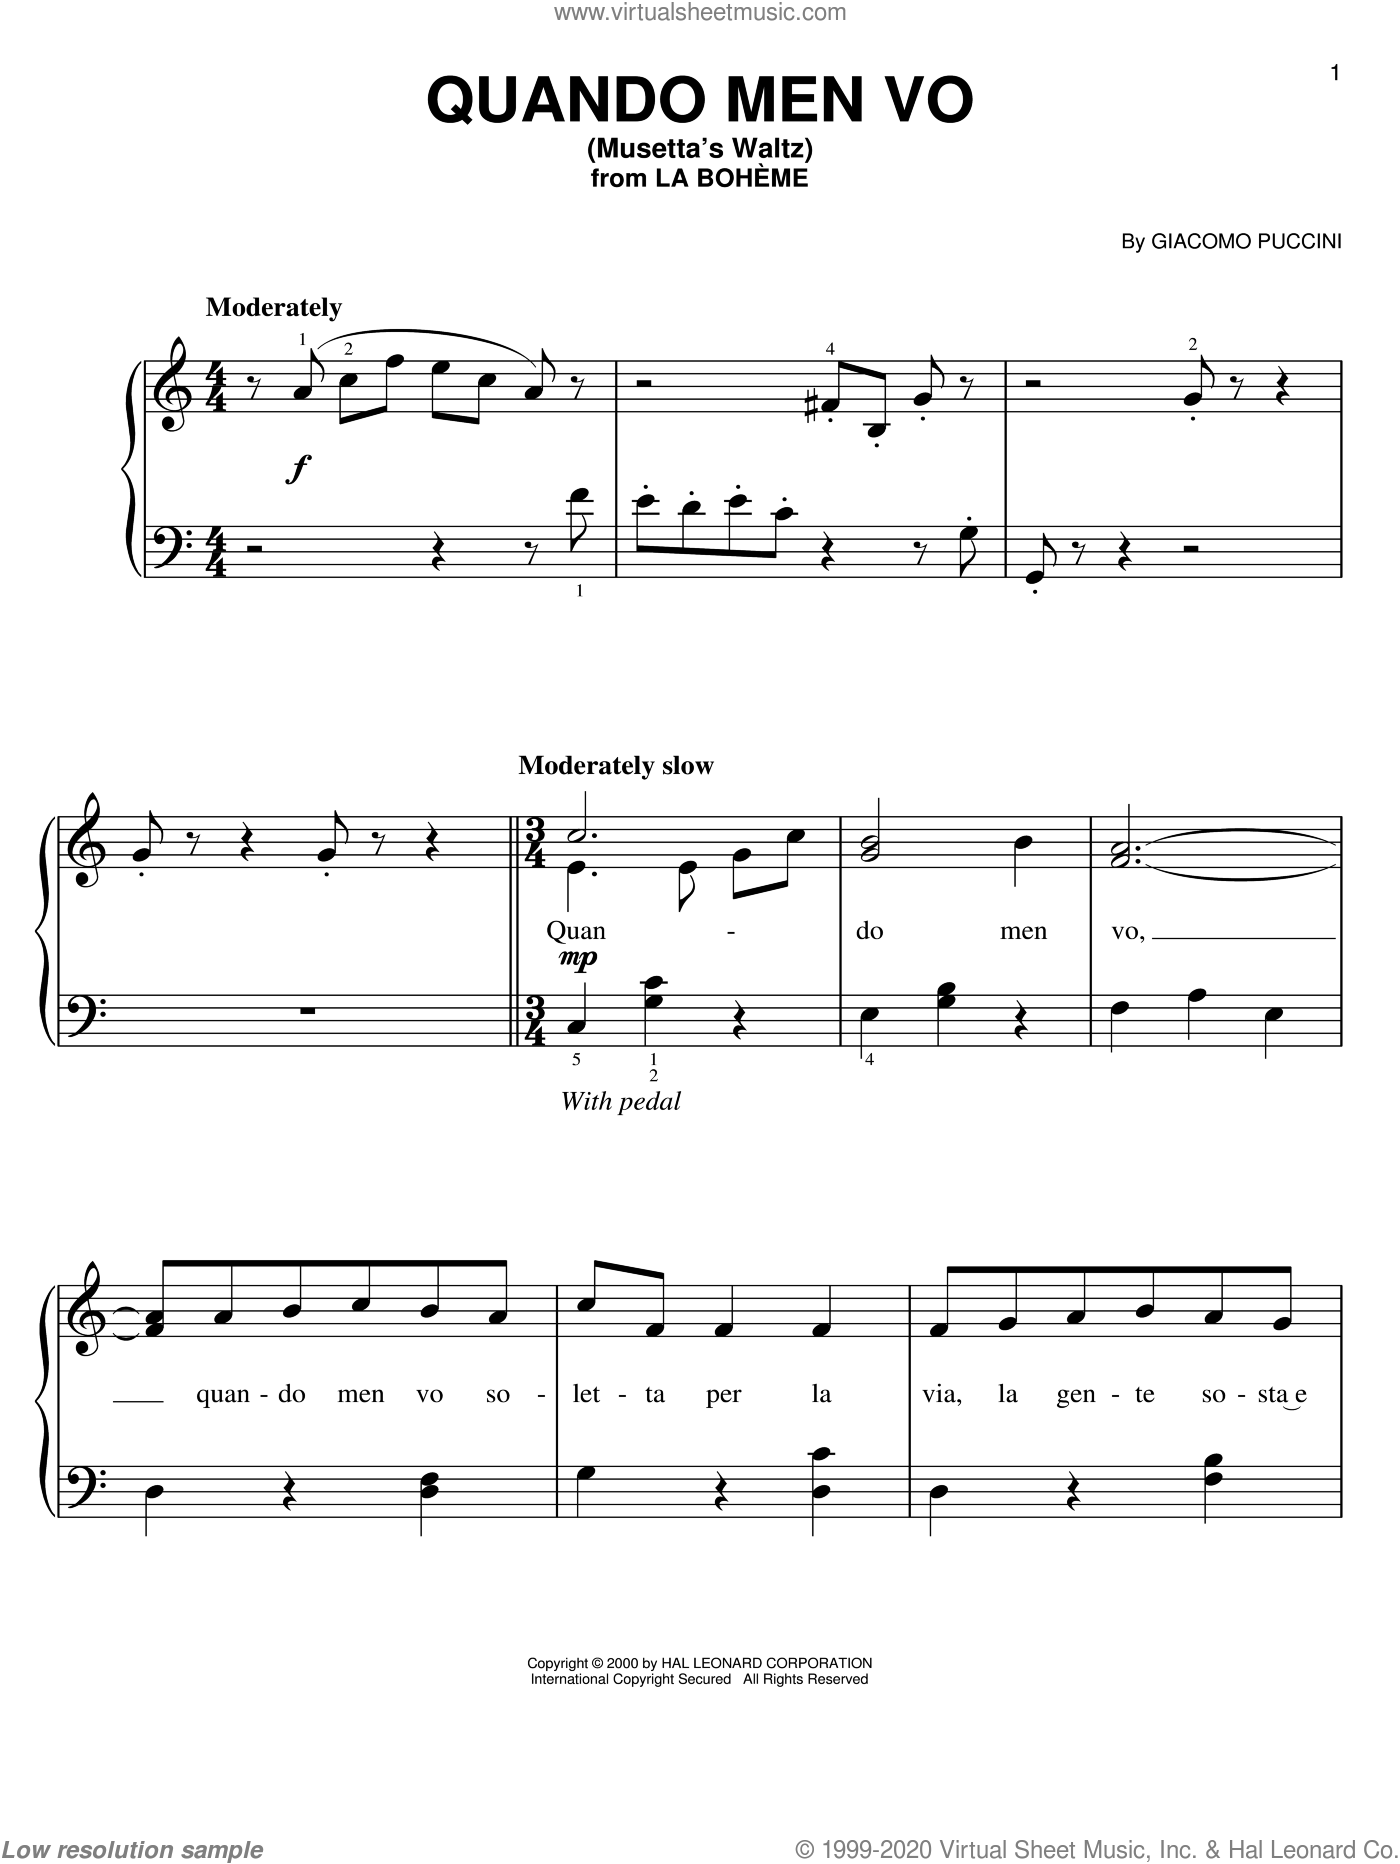 Quando Men Vo (Mussetta's Waltz) sheet music for piano solo by Giacomo Puccini, classical score, easy skill level